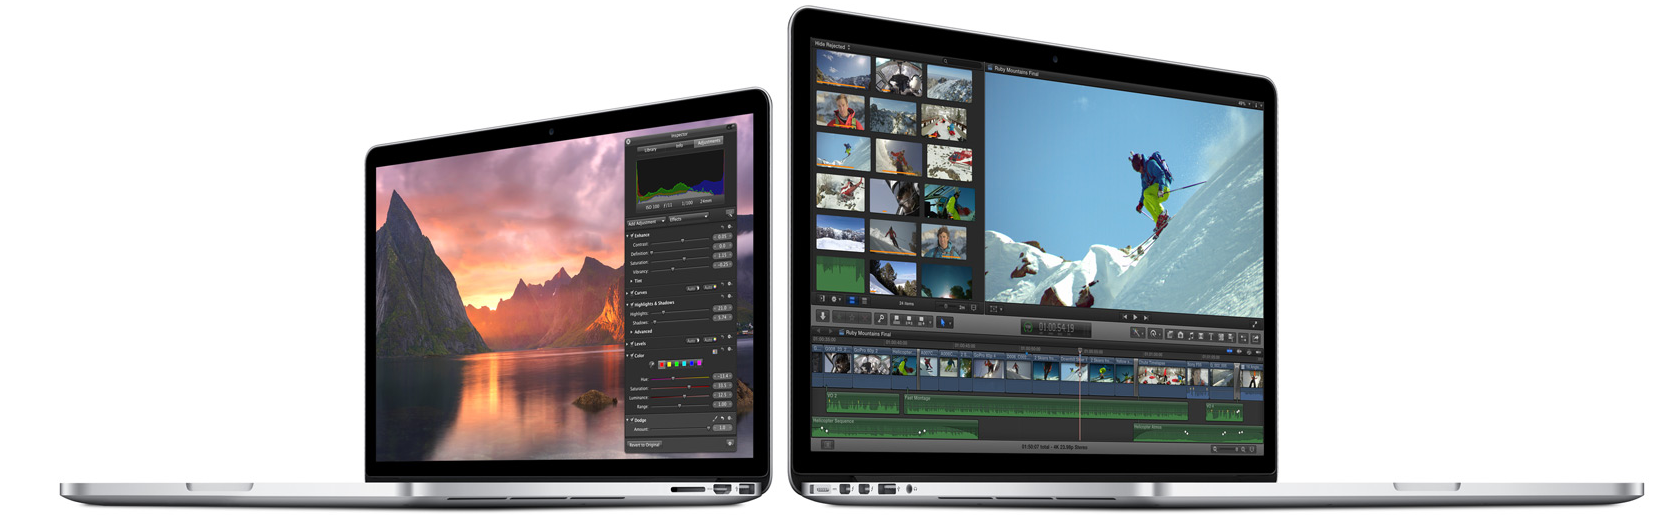 how to make screenshot on macbook pro retina